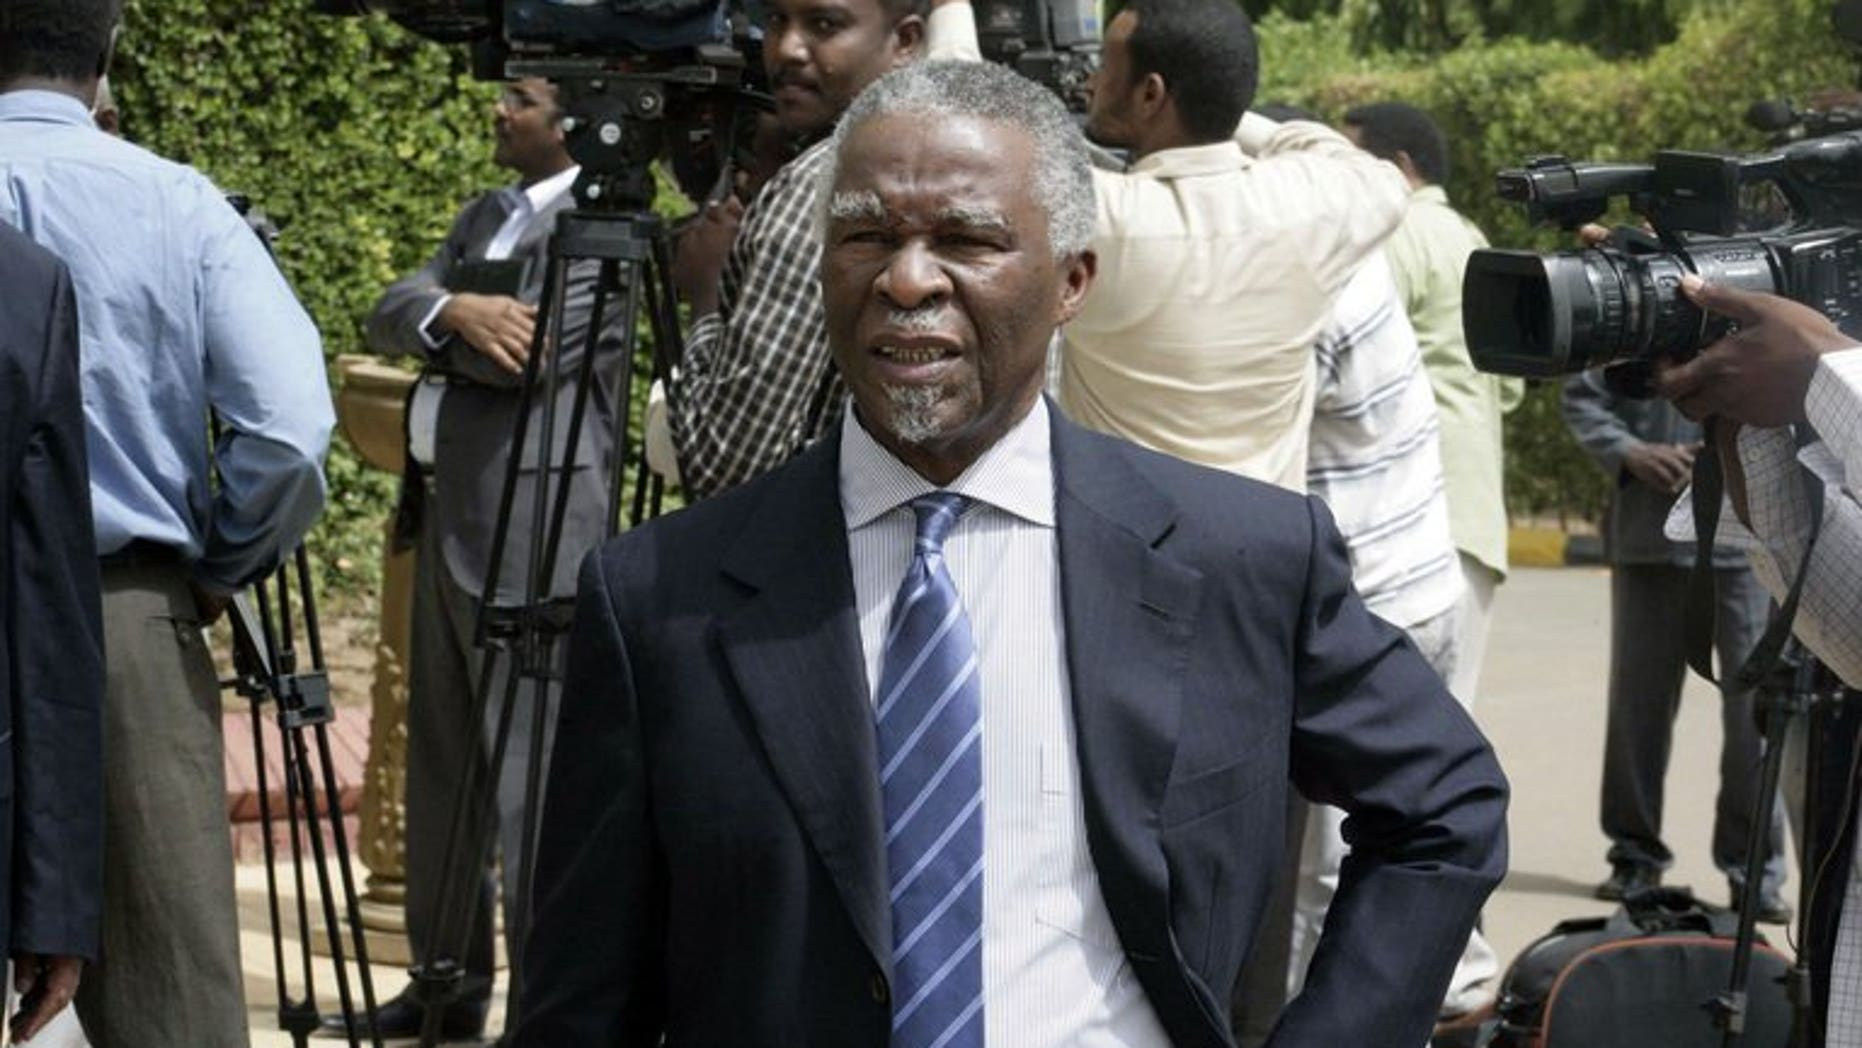 South Africa's former president Thabo Mbeki walks past journalists as he leaves after a meeting with Sudanese president on July 25, 2013 in the Sudanese capital, Khartoum. He was part of securing a deal for Sudan to delay closing an economically vital pipeline carrying South Sudanese oil.